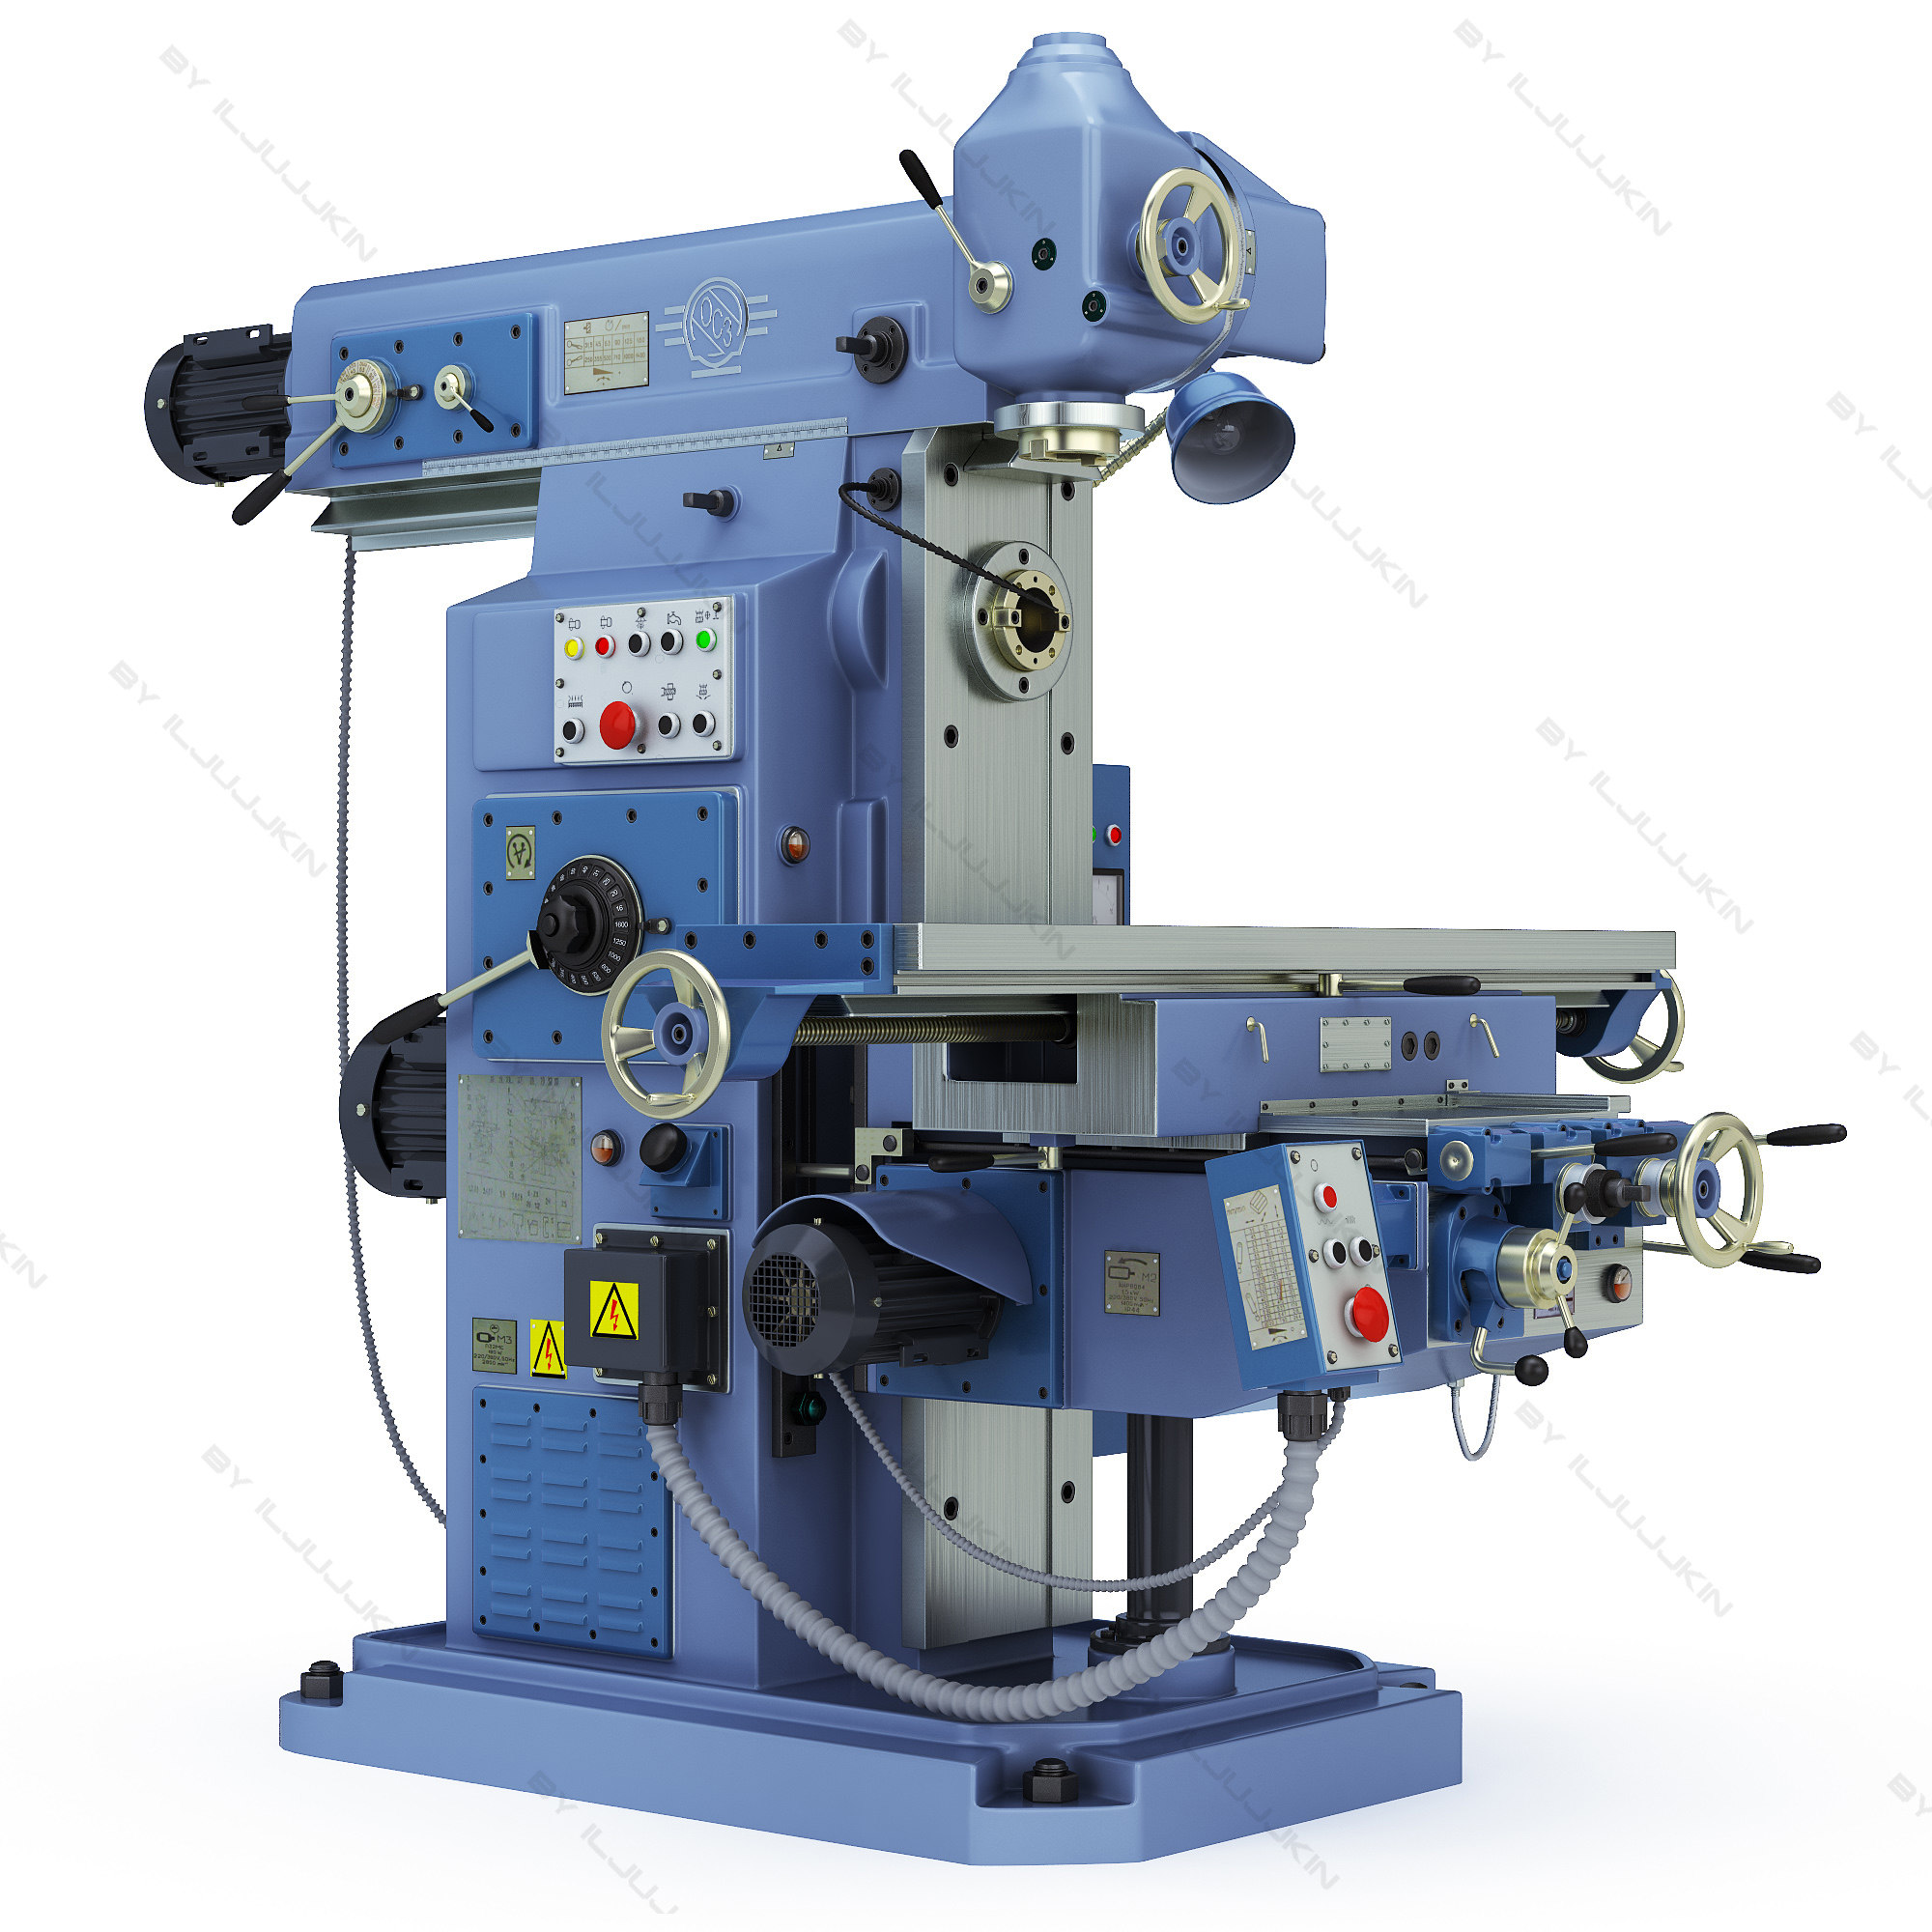 milling machine Tc 9-524 do not attempt to tighten arbor nuts using machine power when installing or removing milling cutters, always hold them with a rag to prevent cutting your hands.